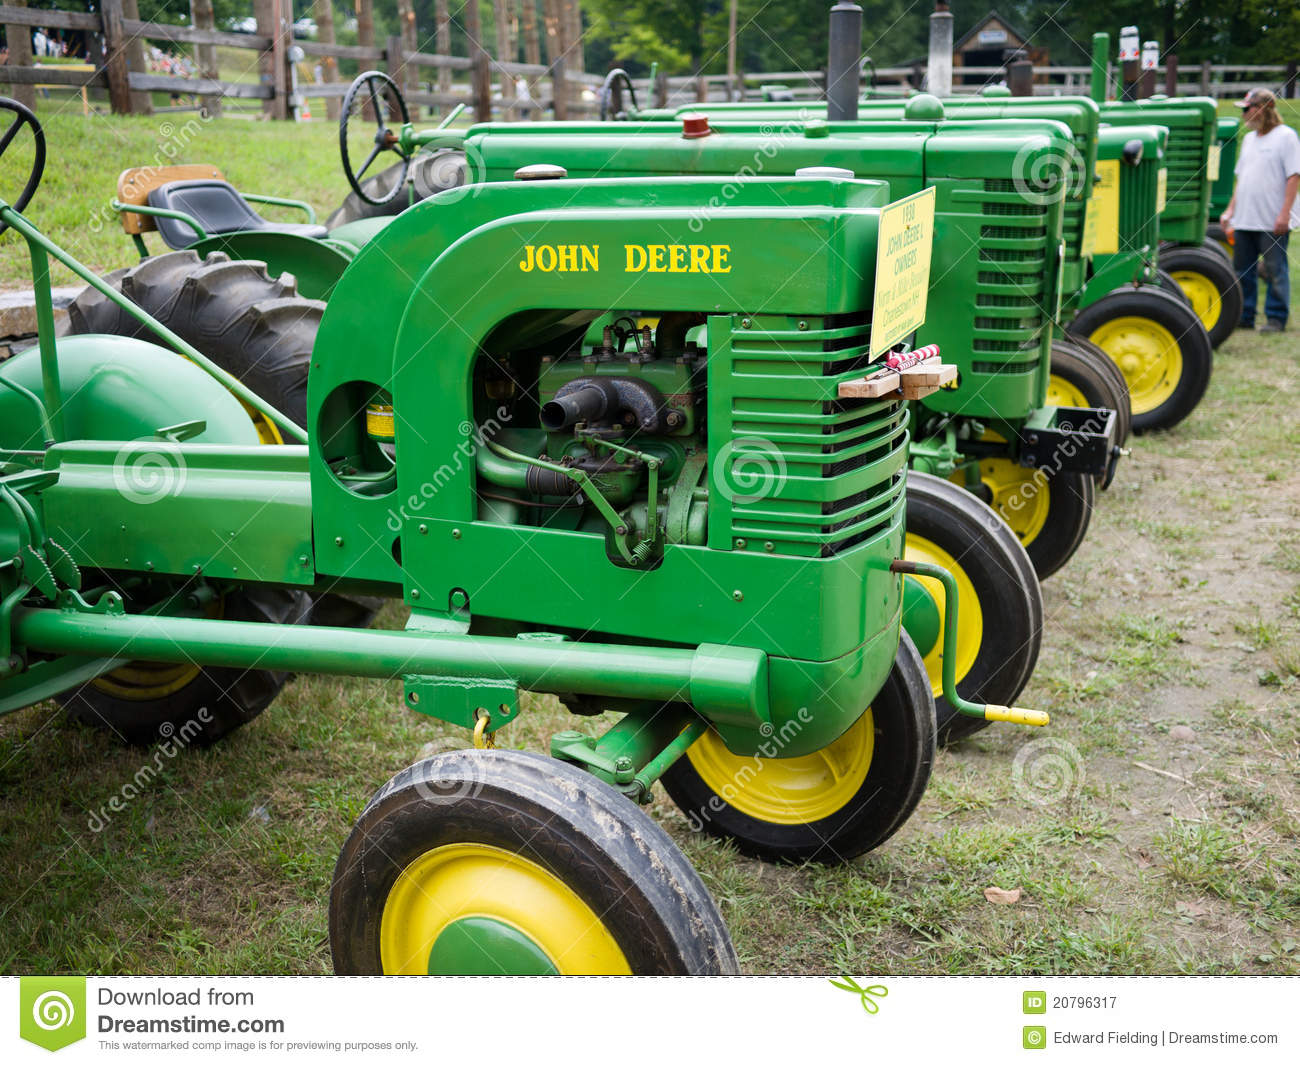 Collectors Vintage John Deere Tractors : Vintage john deere antique tractors editorial photography